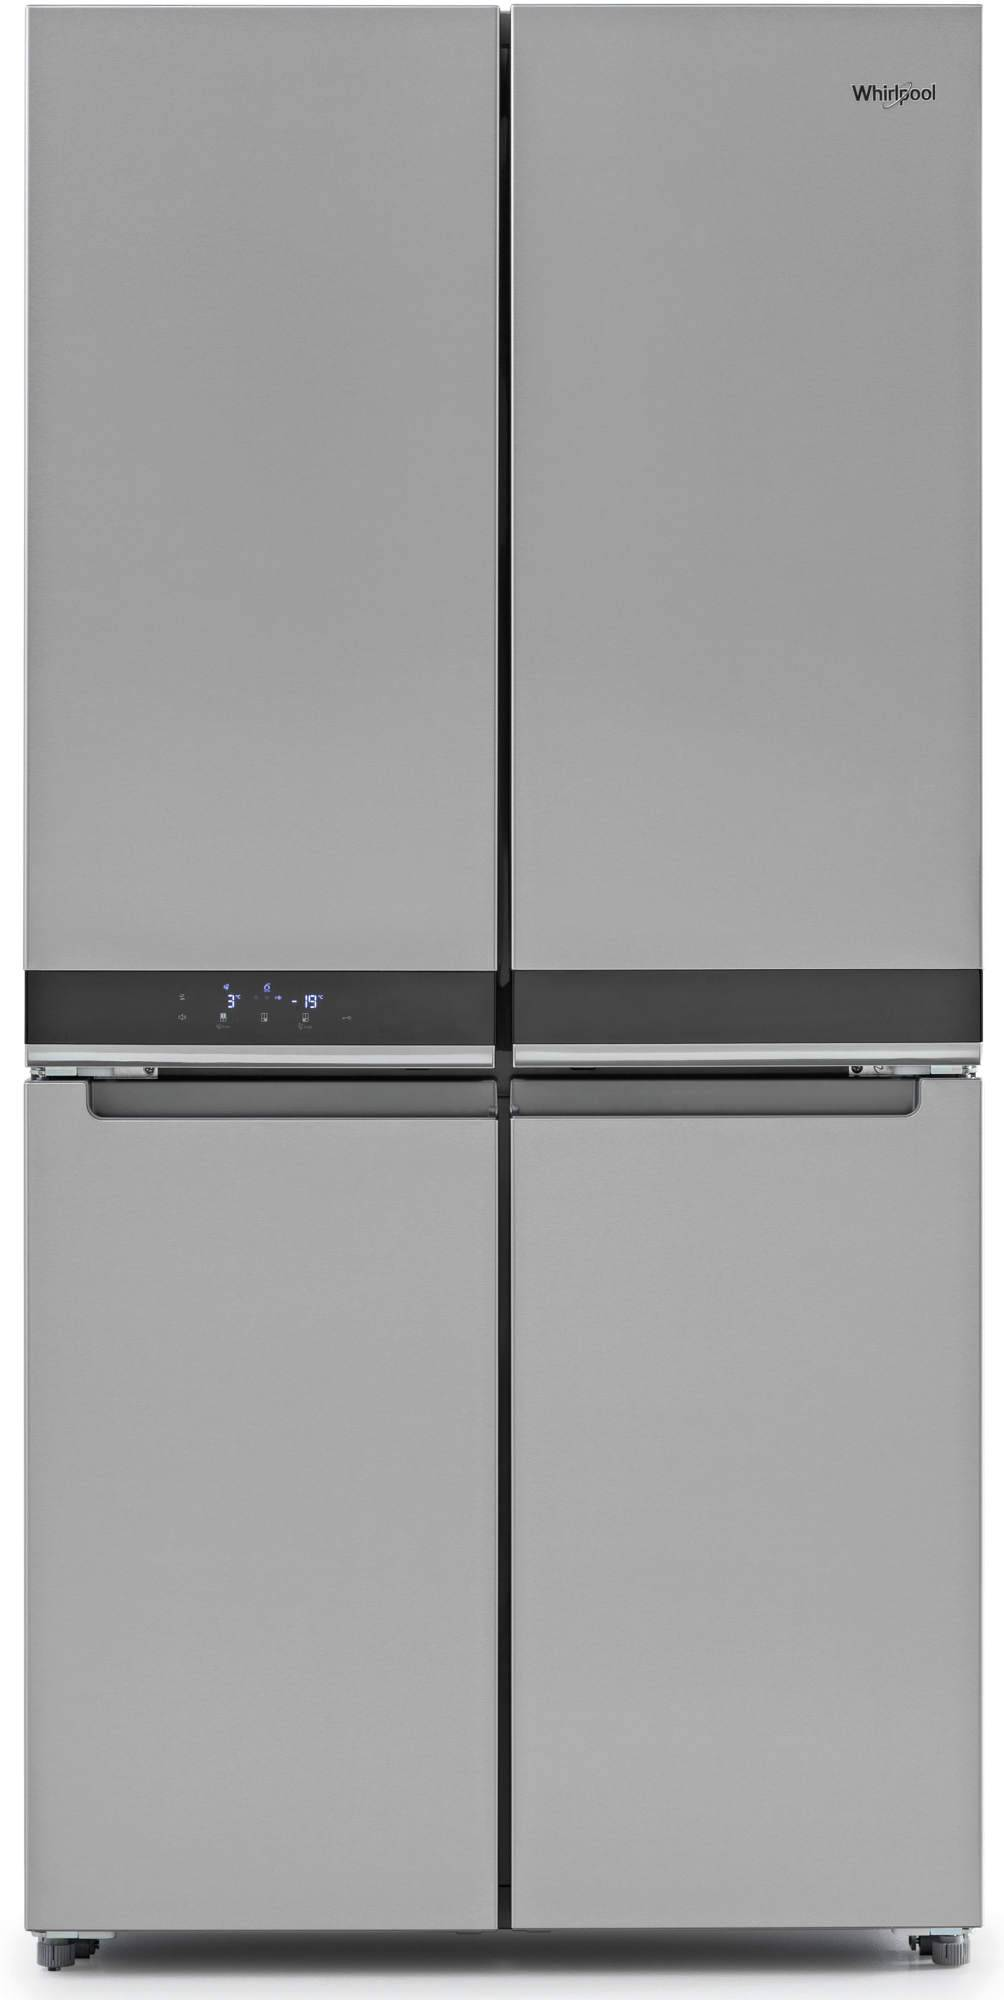 Whirlpool Refrigerateur-multiporte WHIRLPOOL - WQ 9 E 1 L